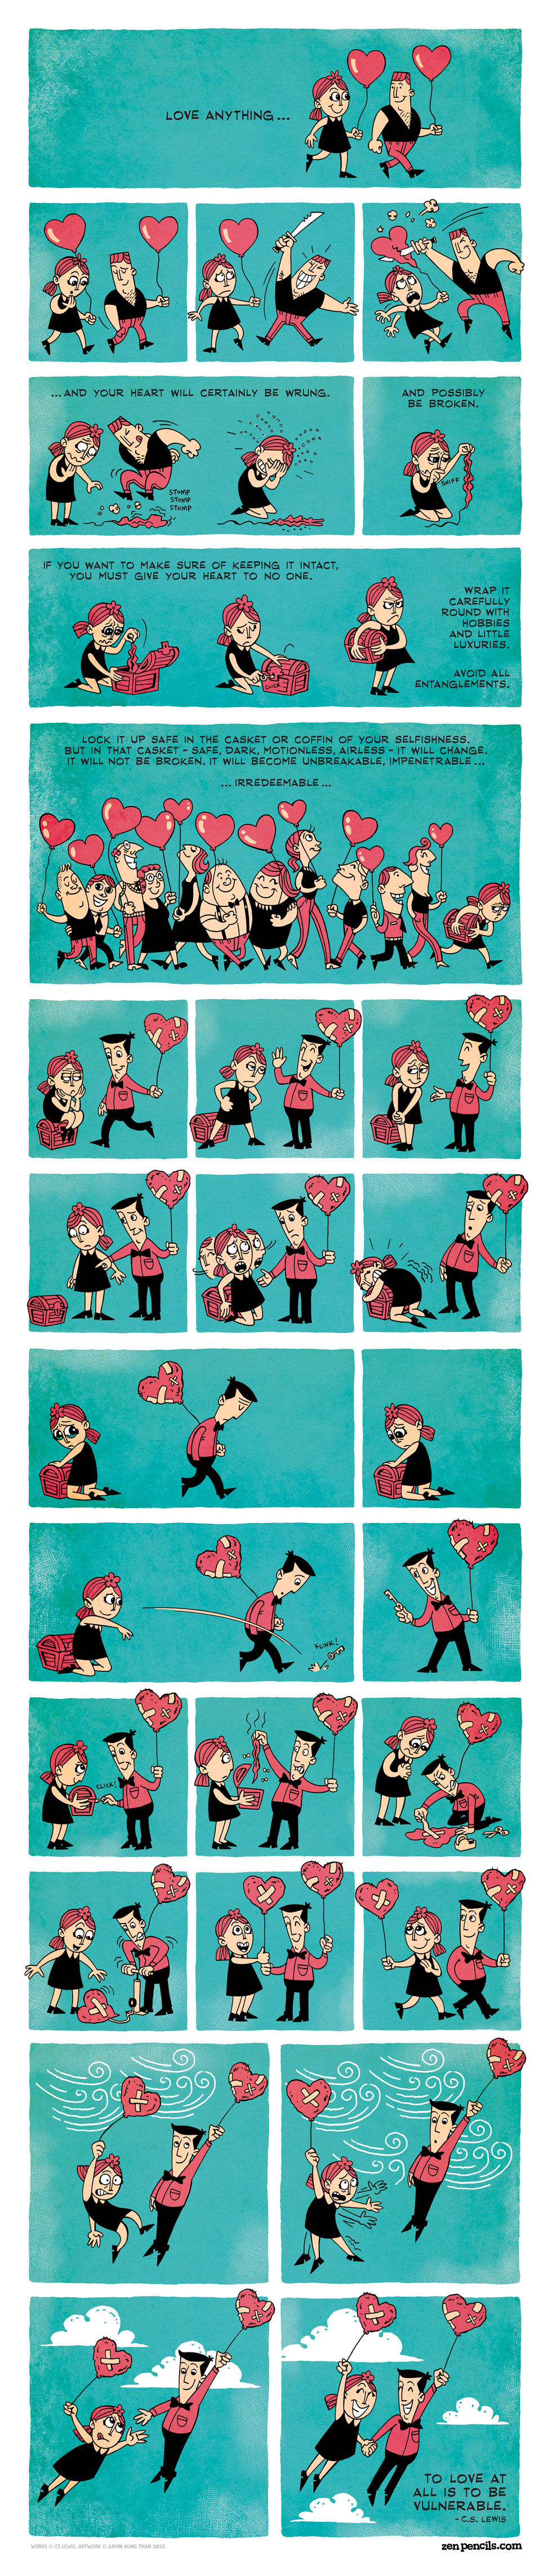 source: http://zenpencils.com/comic/103-c-s-lewis-to-love-at-all/